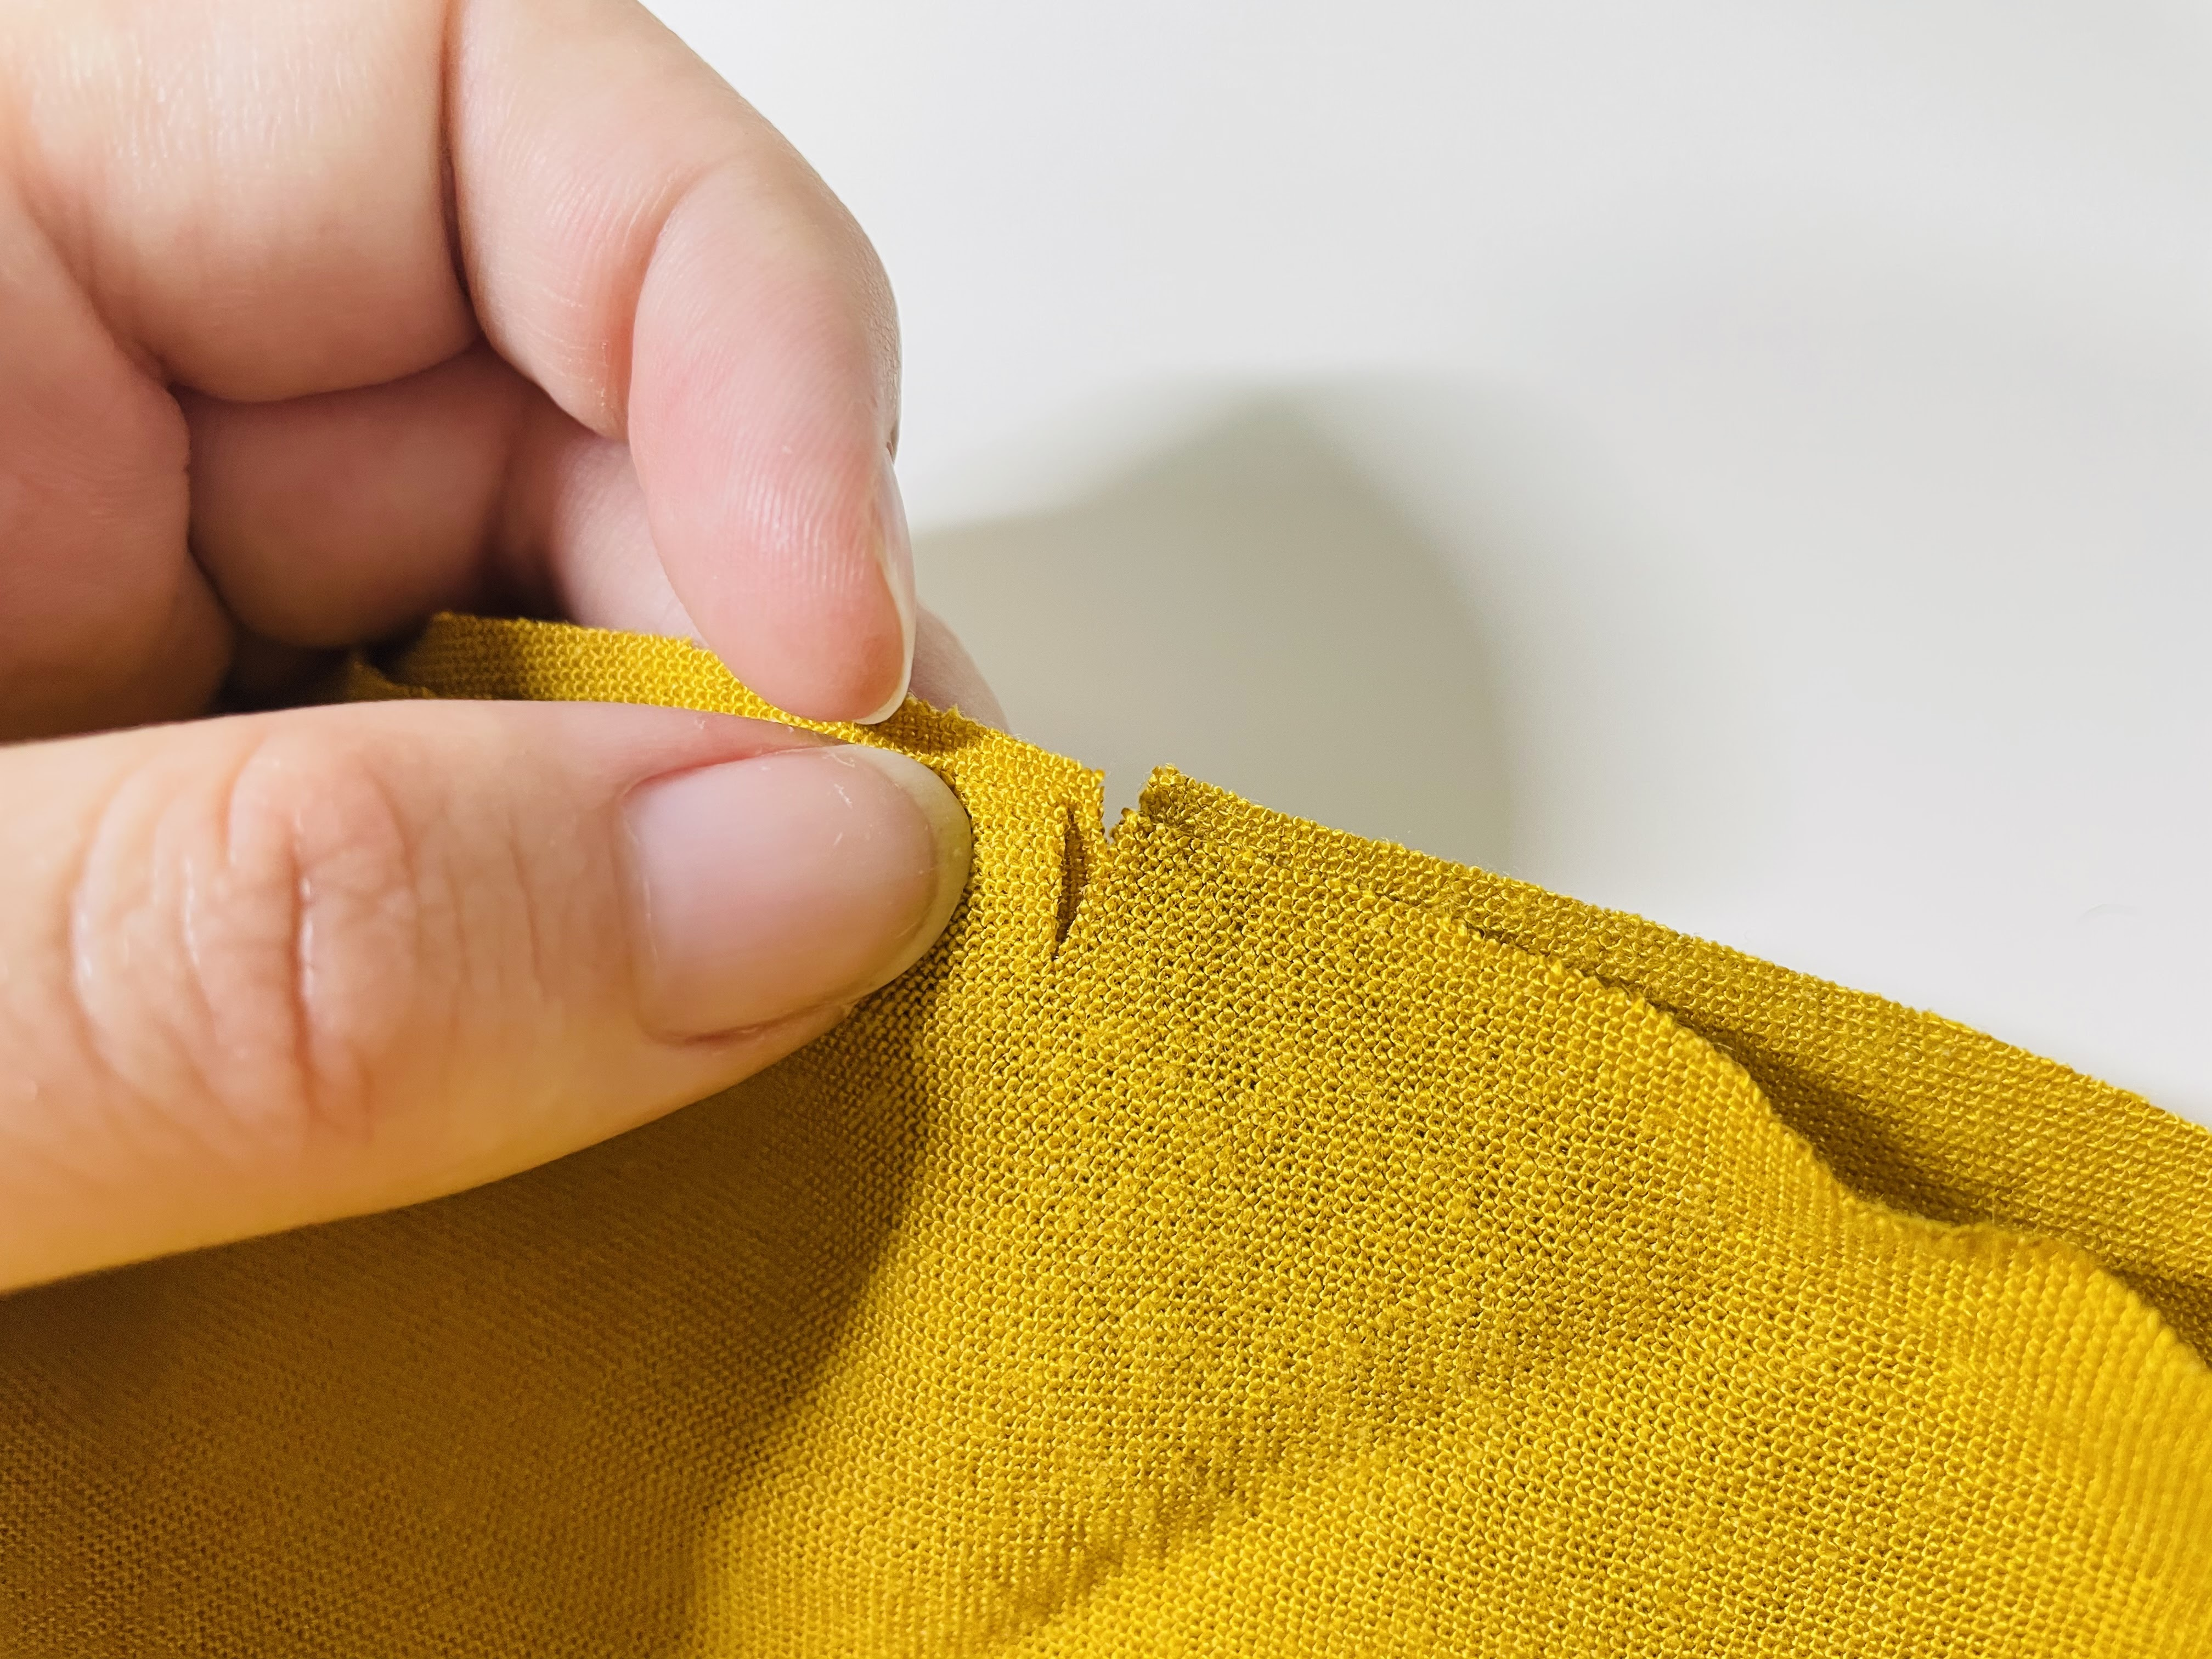 Lindsie holds two notched pieces of fabric together so that their notches align